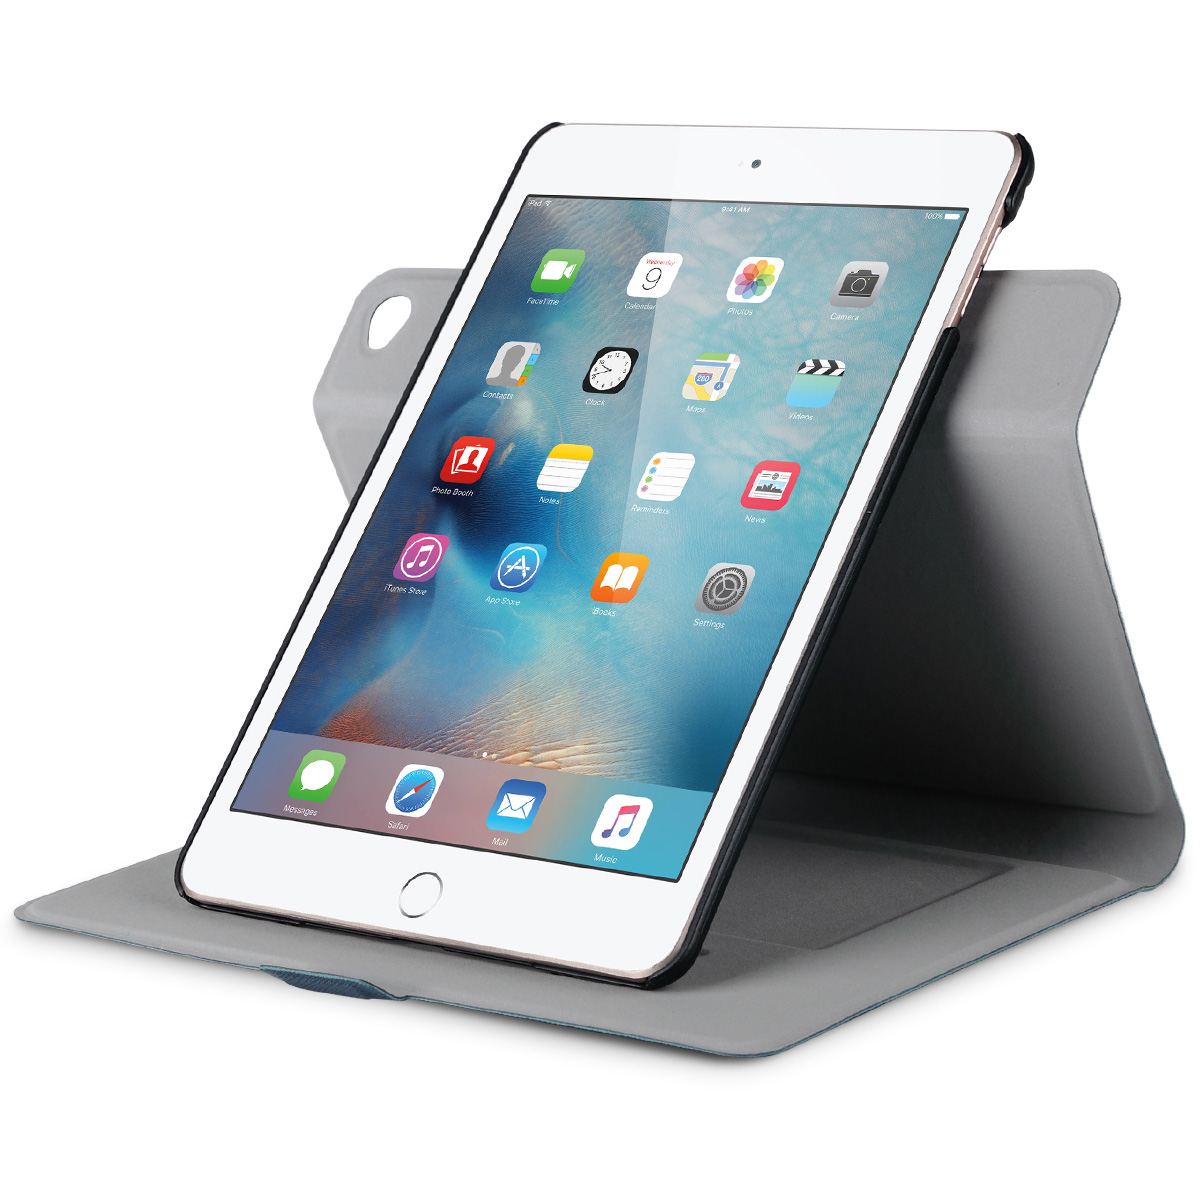 how to put photos from computer to ipad mini